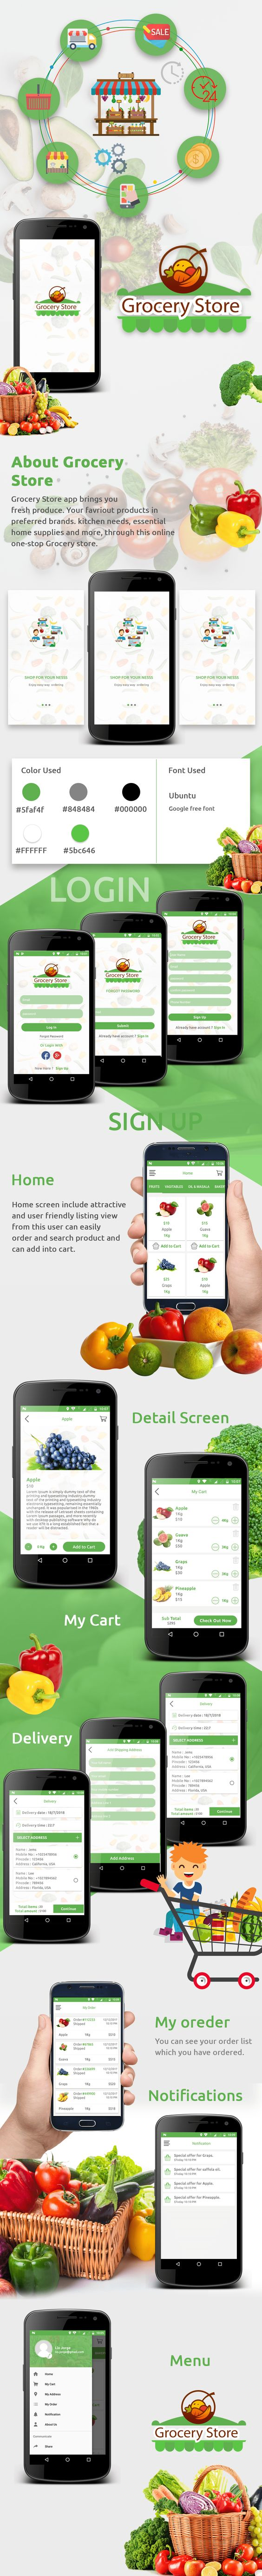 Grocery template Grocery Store Android App Nulled Free Download Grocery Store Android App Nulled Free Download 2db6d8e8d9441d534e68a6fdb5704a0c